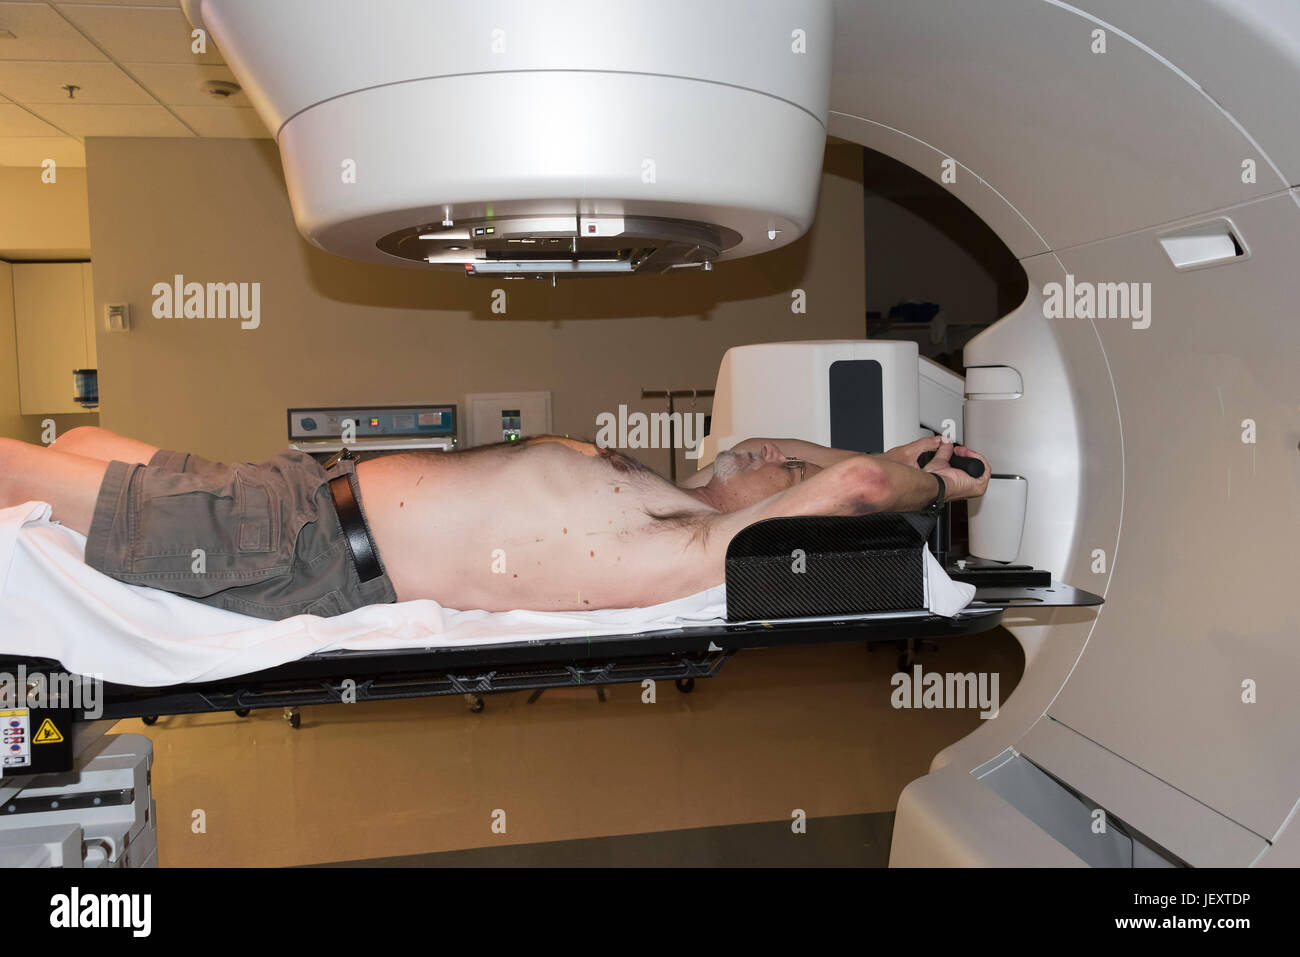 Patient Radiation therapy showing laser lines for targeting cancer cells in the brain and Throat - Stock Image